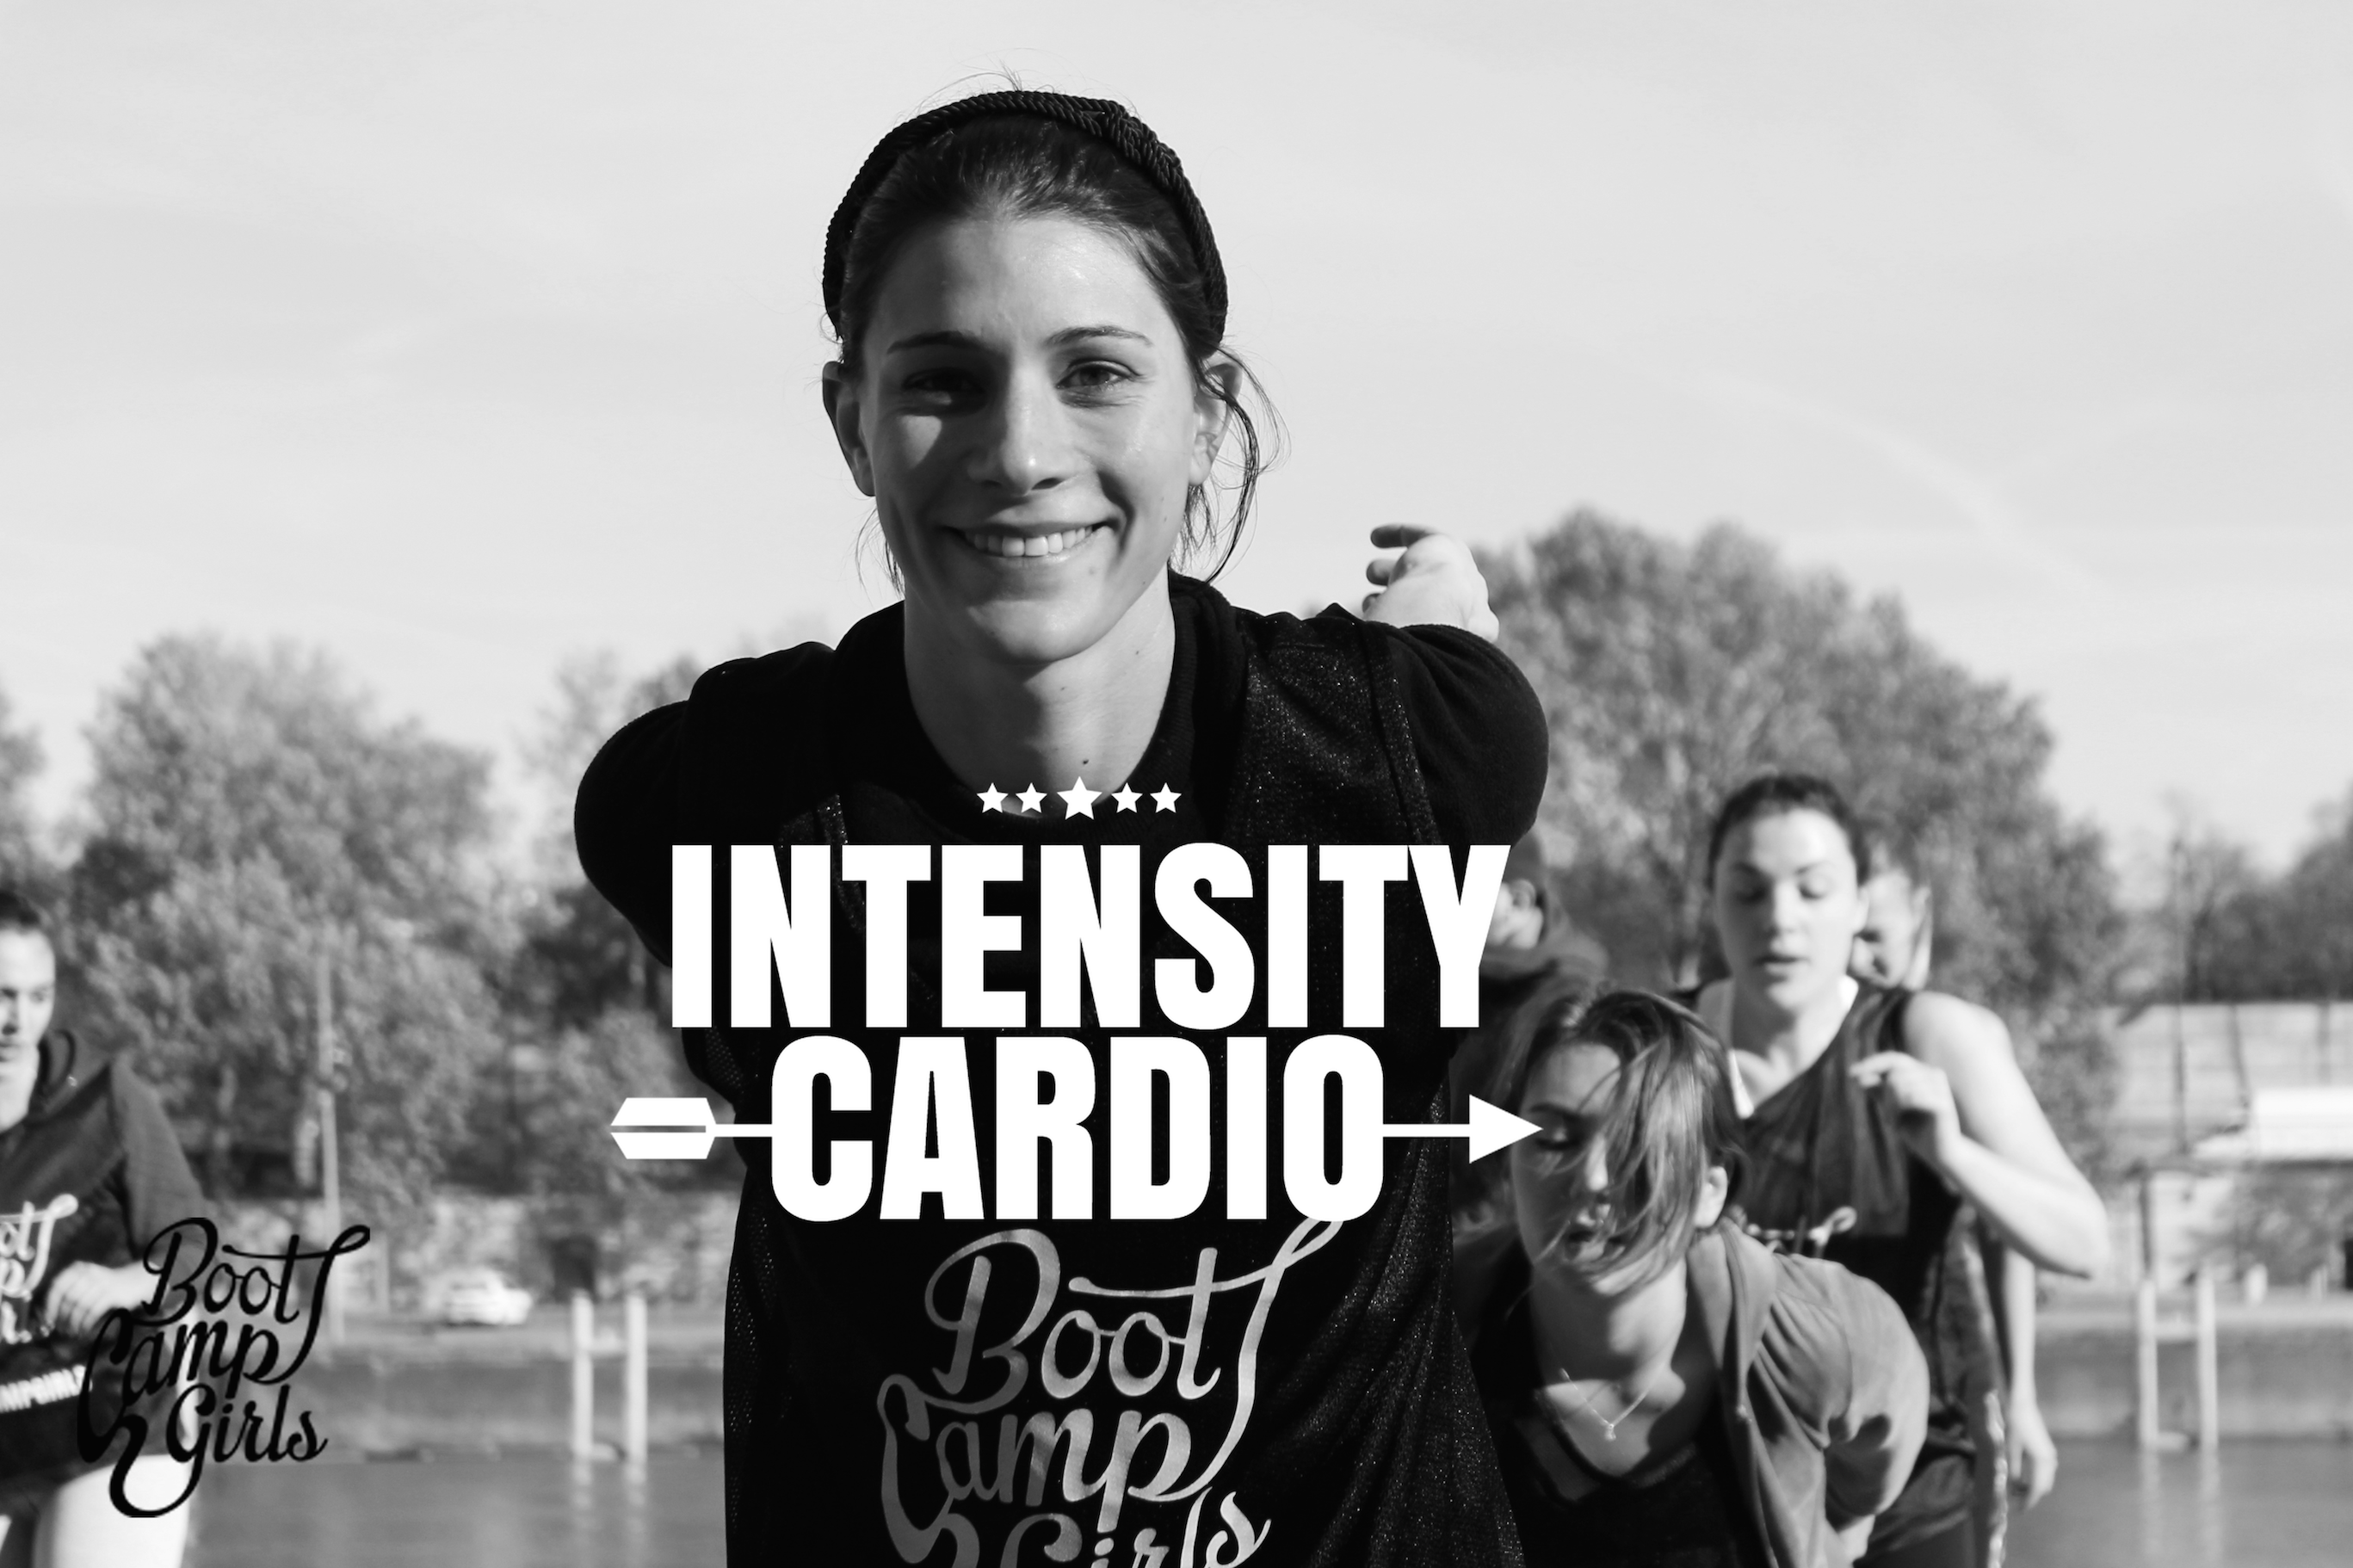 Boot Camp Girls Intensity Cardio Arènes de Lutèce